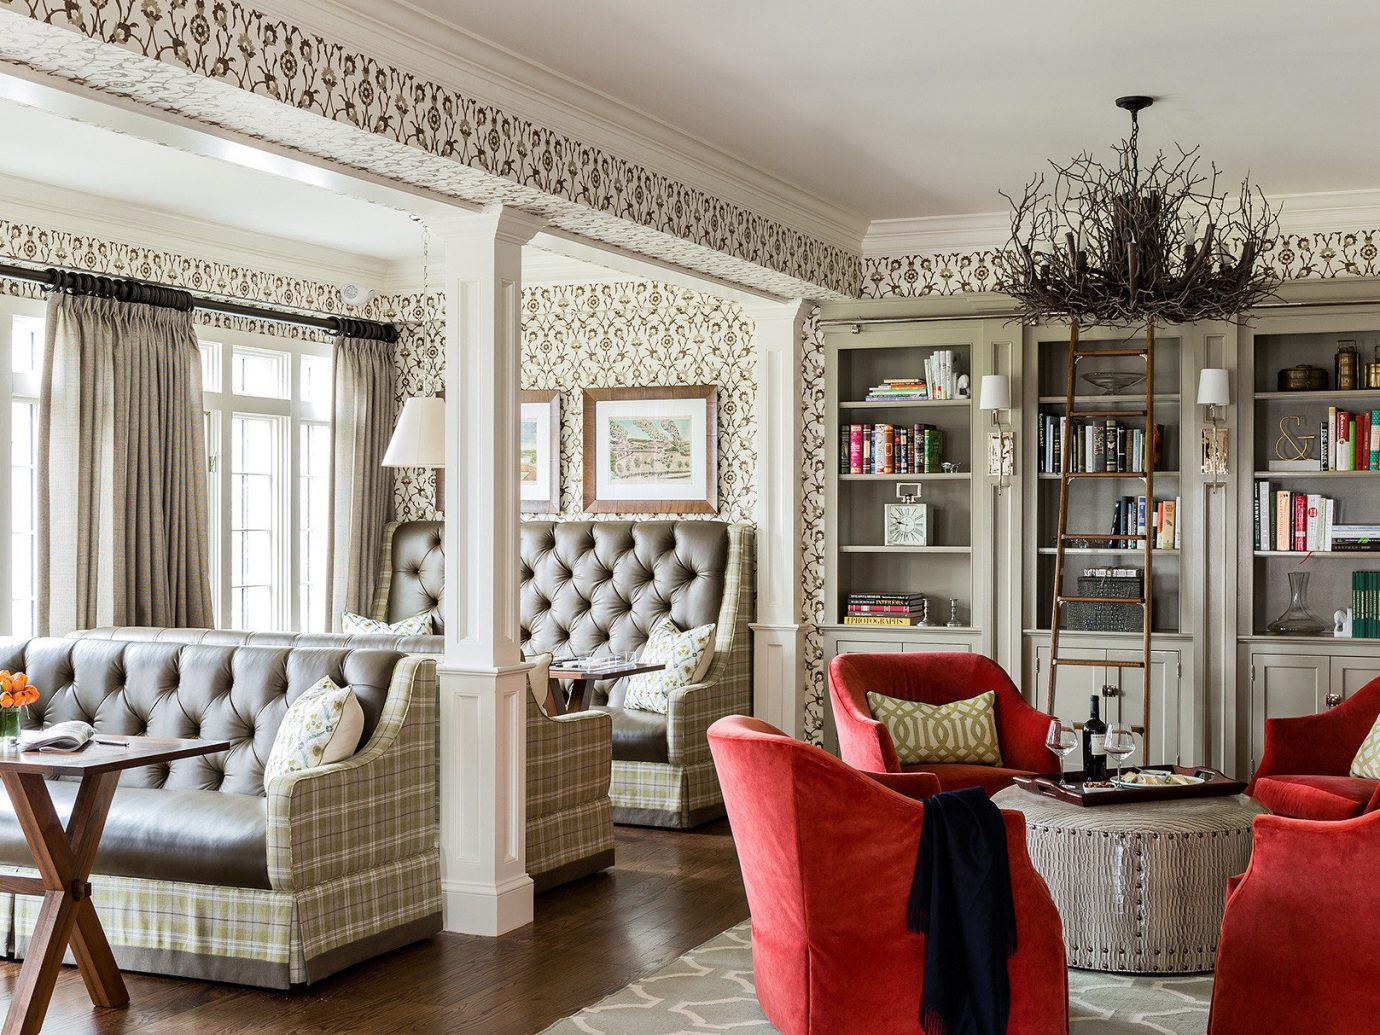 Boutique Classic Dining Drink Eat Hotels Inn indoor floor Living room living room property chair home red interior design estate furniture Design real estate mansion window covering porch decorated